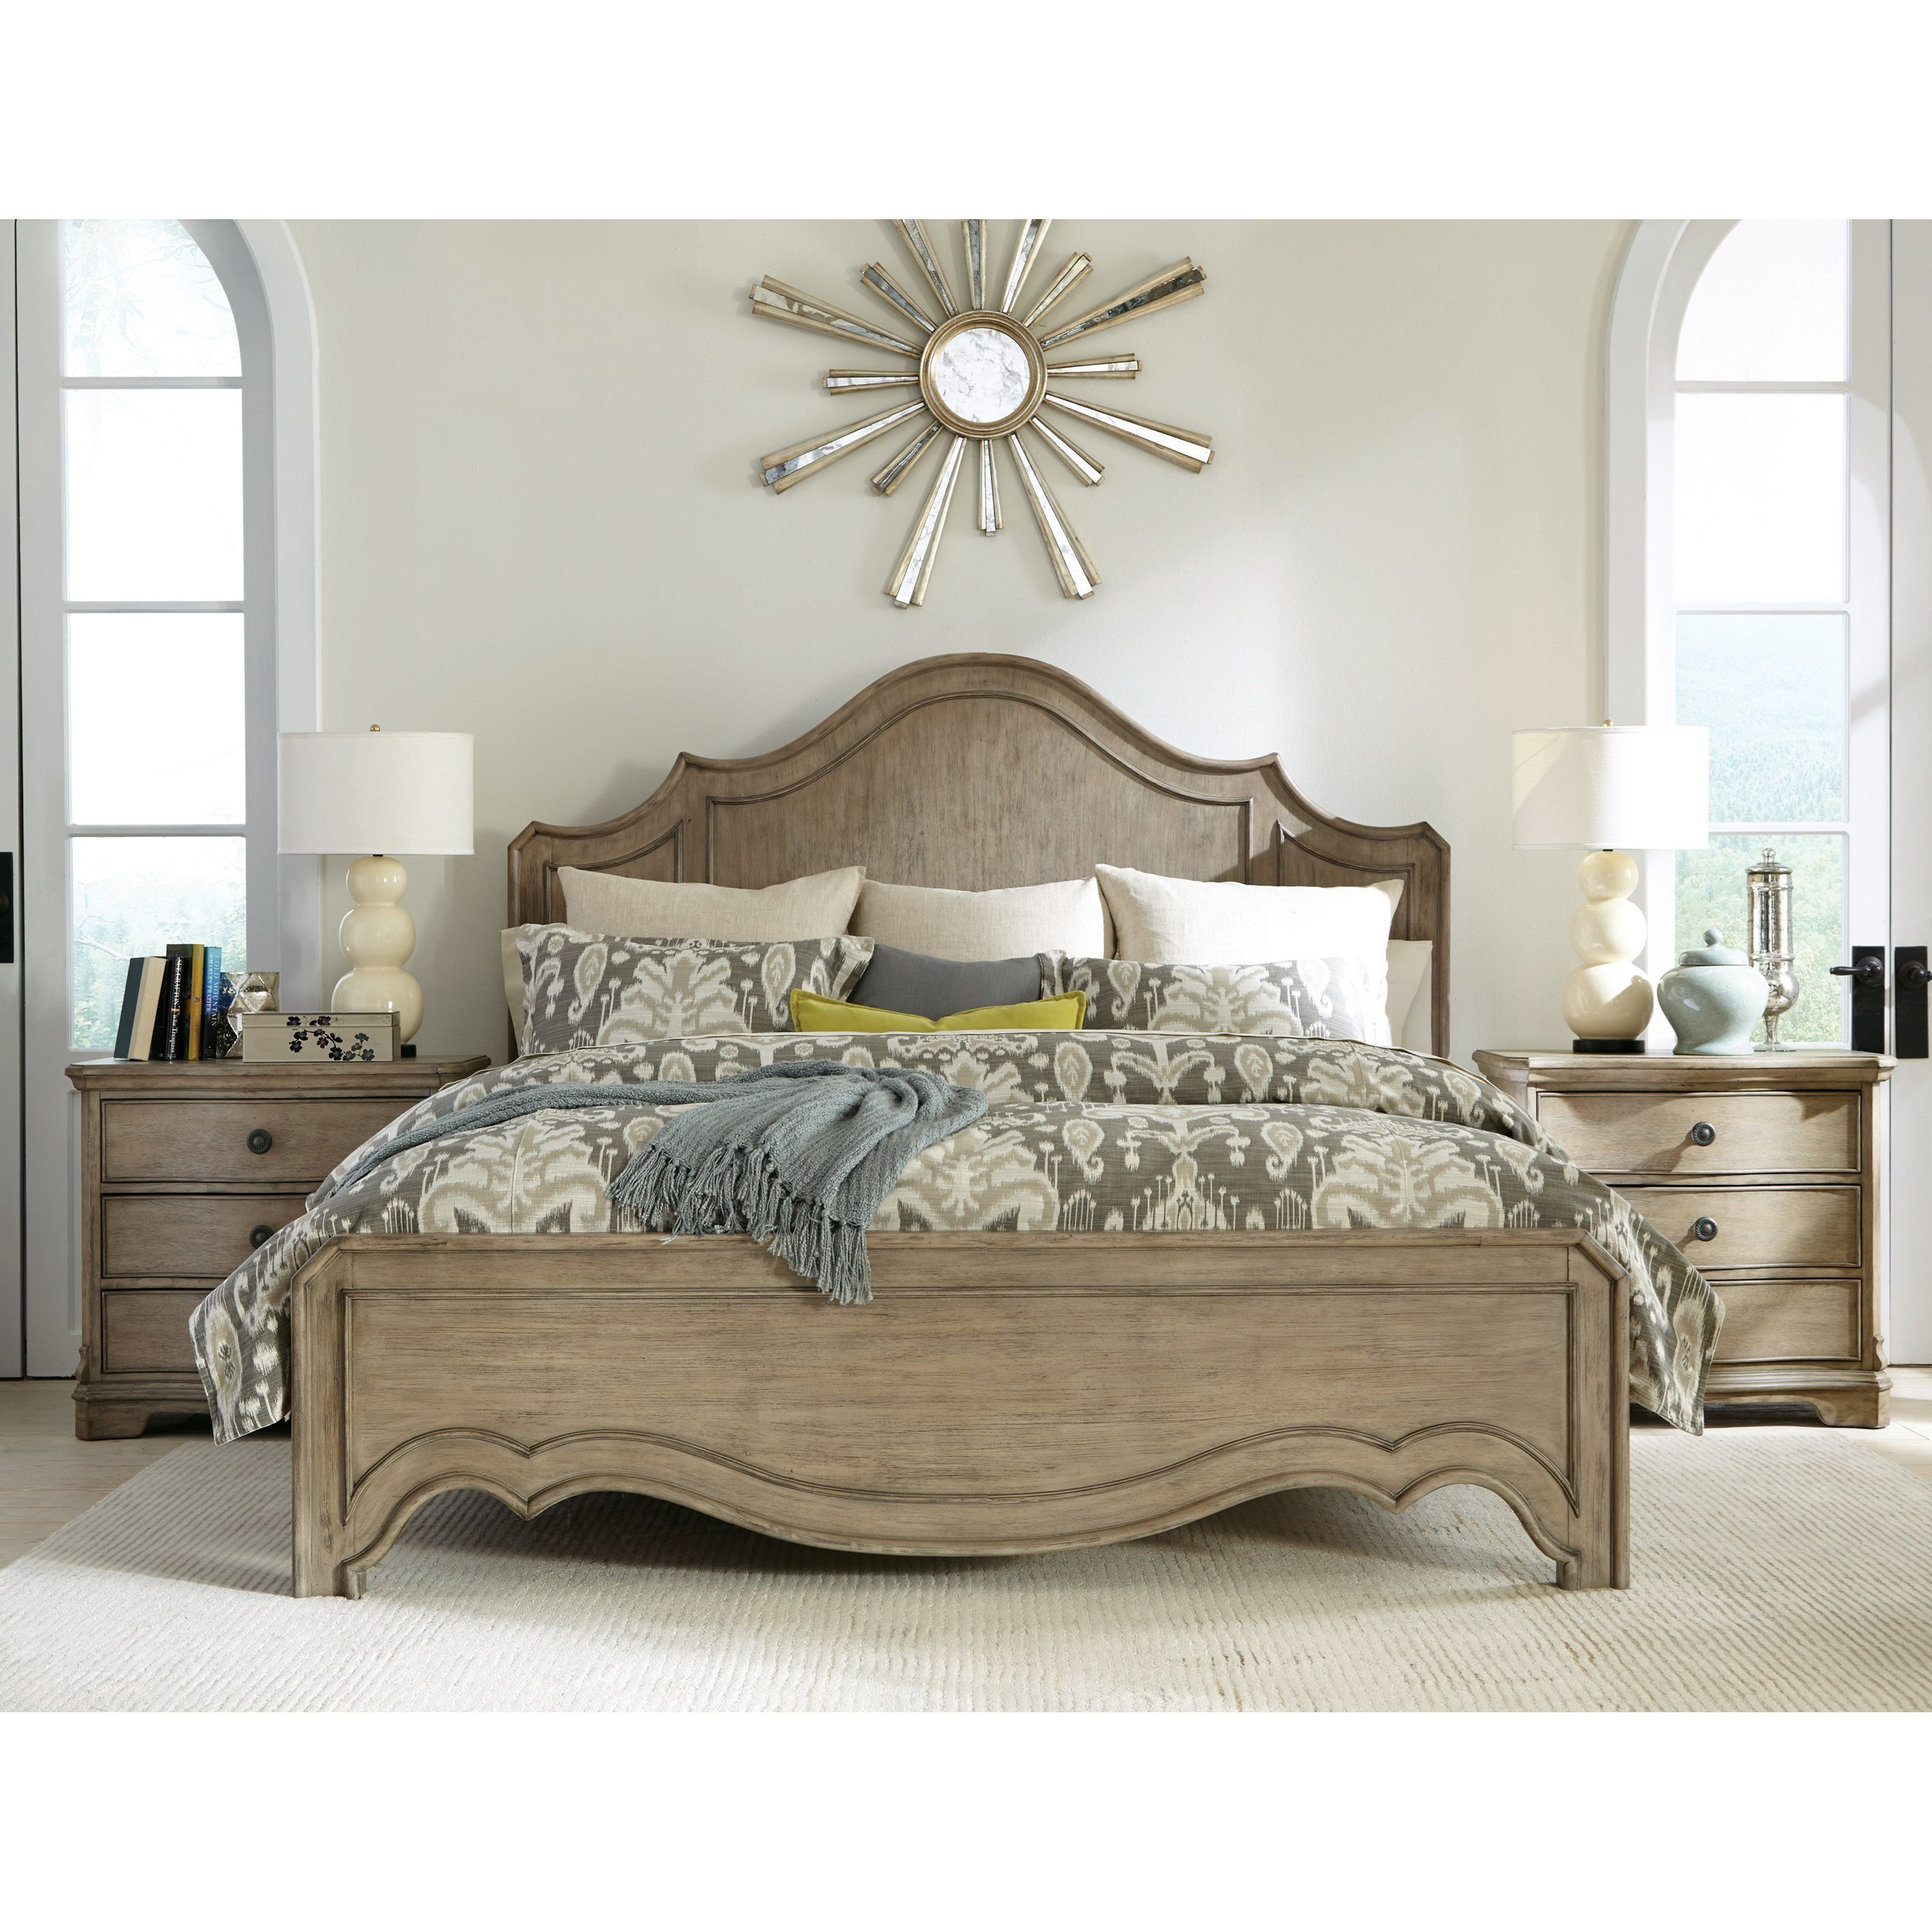 Best Riverside Furniture Corinne Queen Bedroom Group 2 Hudson With Pictures